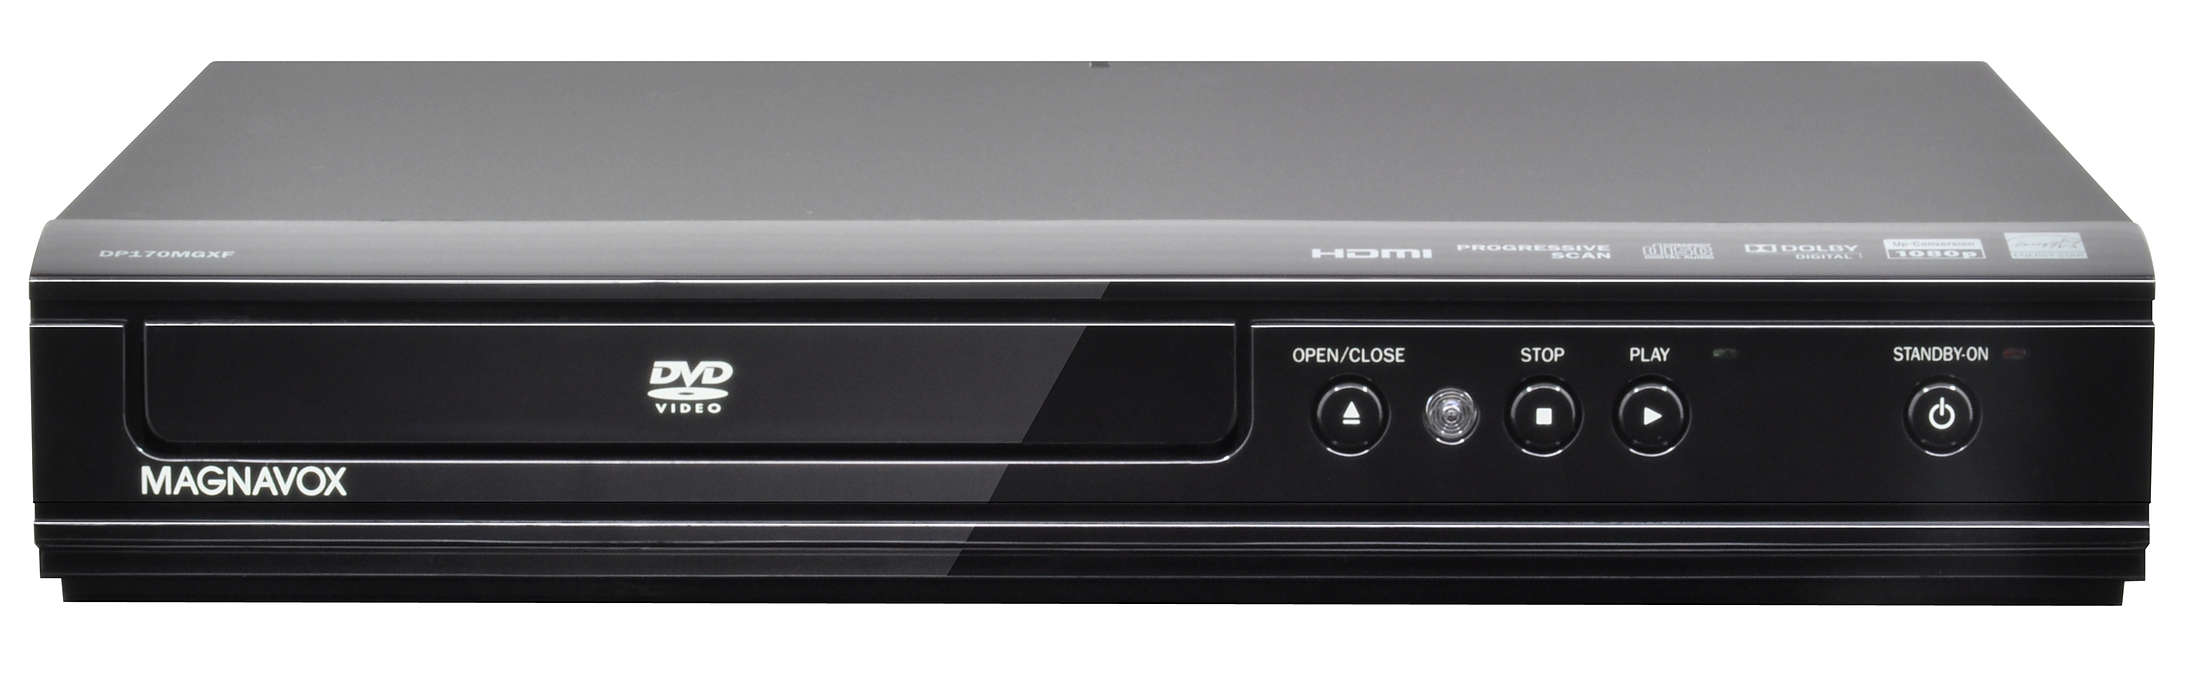 DVD Player with HDMI